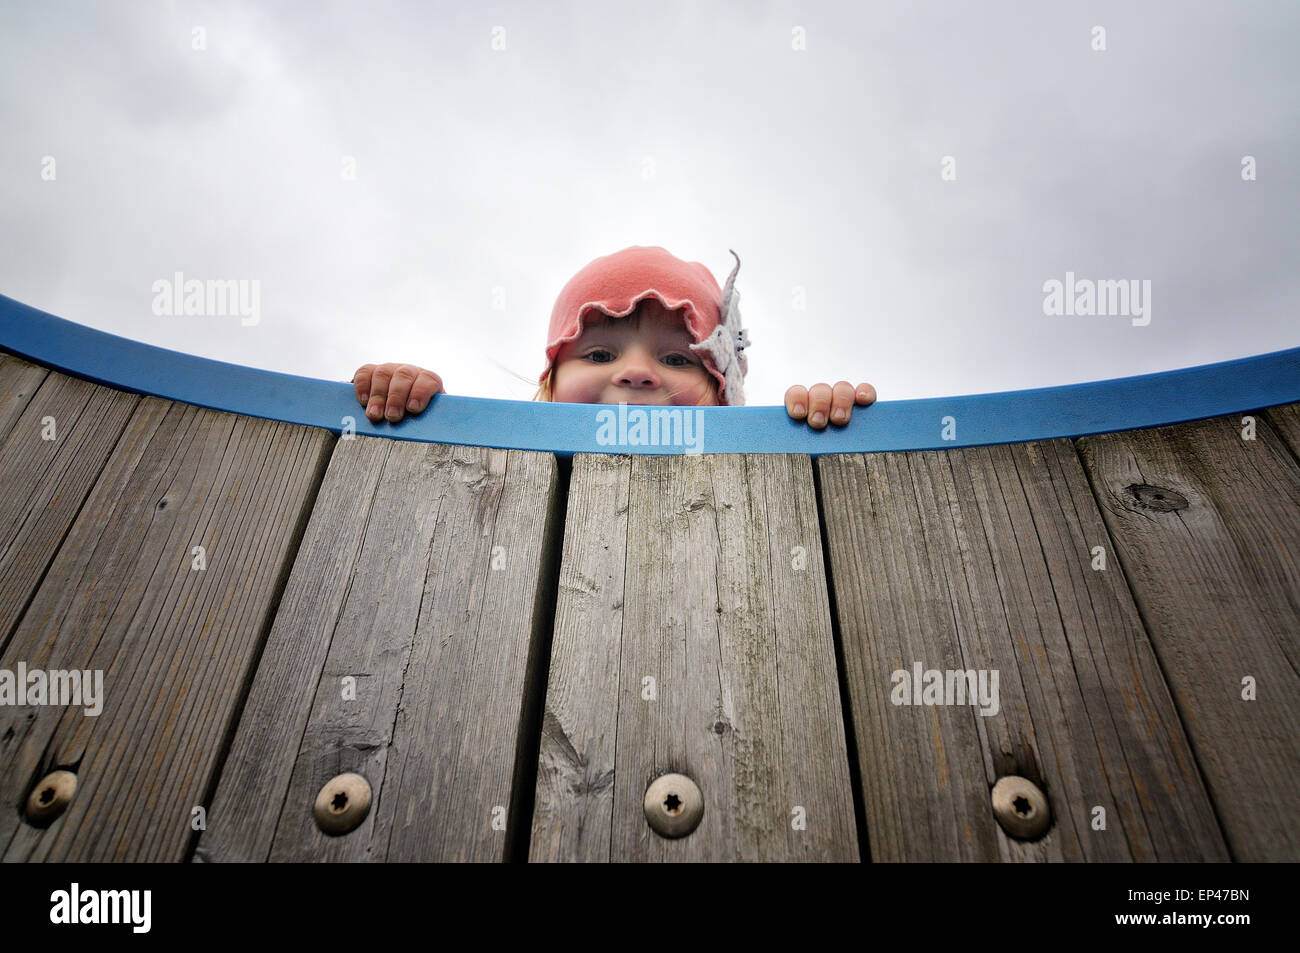 Girl looking down over the edge of a wooden climbing frame - Stock Image